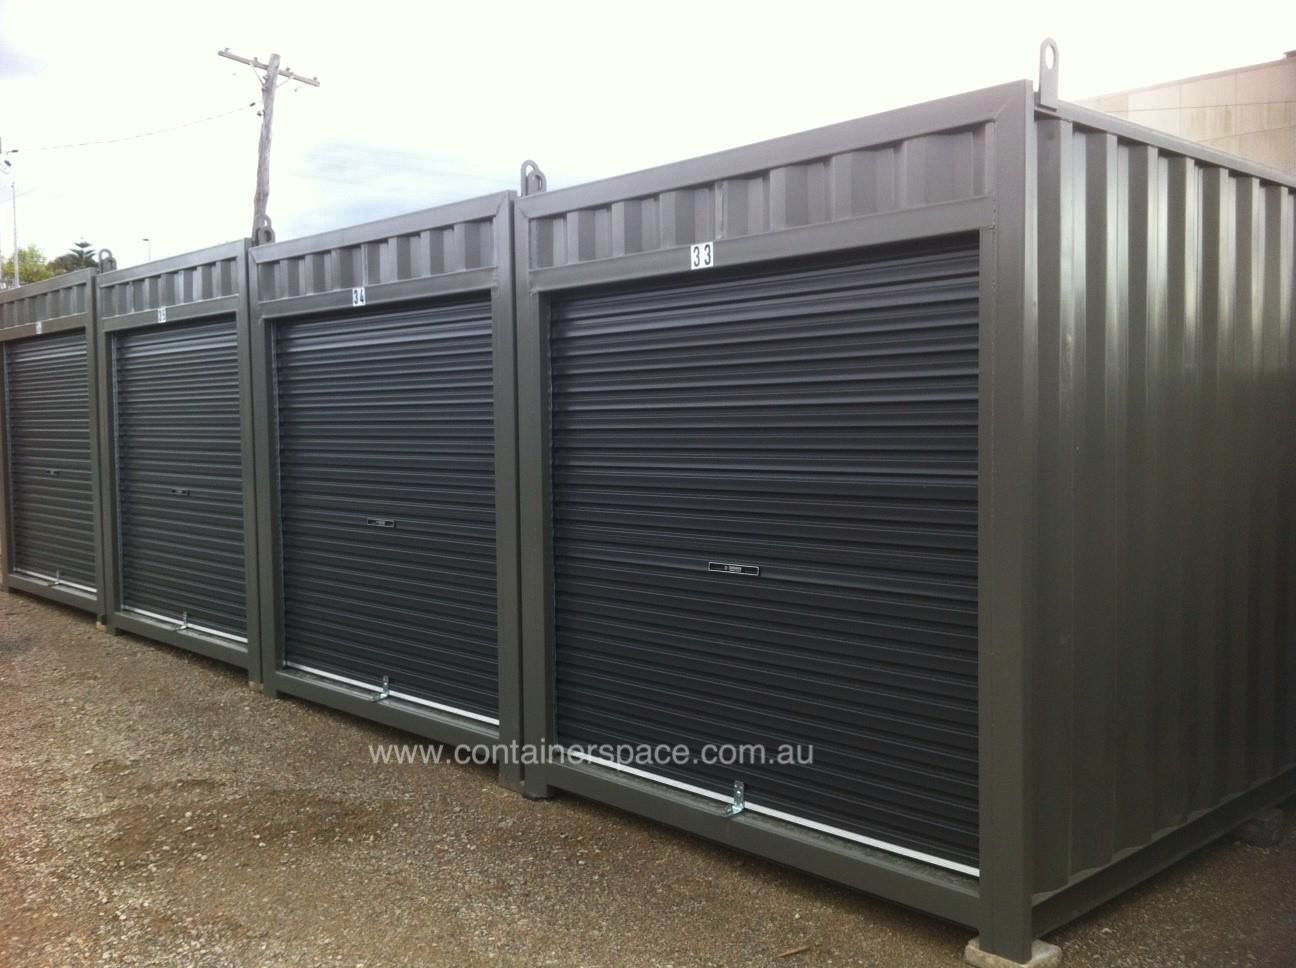 New Used Shipping Container Sales In Melbourne Shipping Container Storage Self Storage Shipping Container